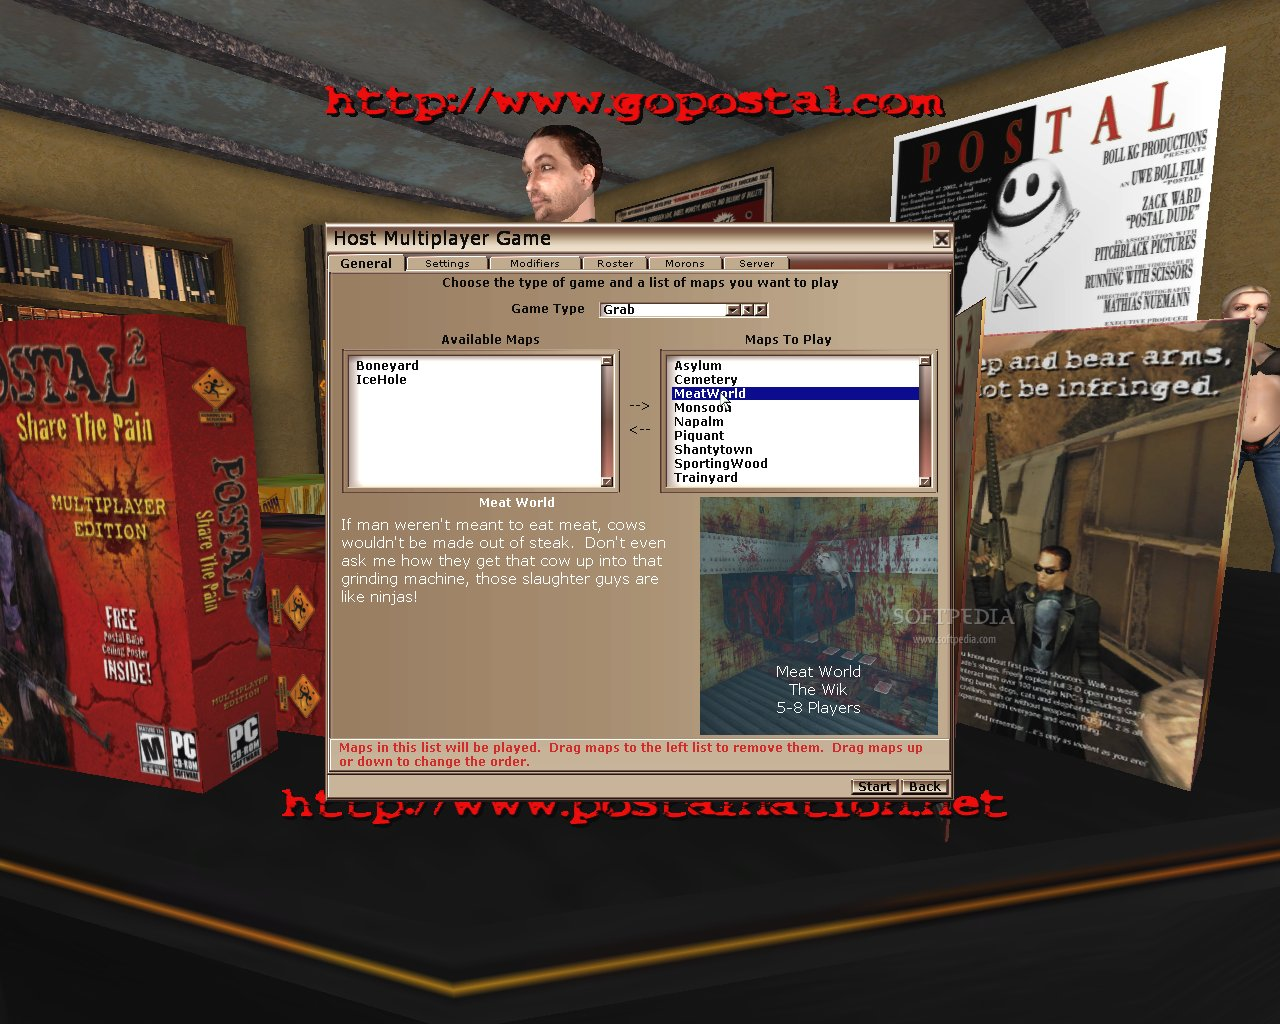 Postal 2 share the pain free. norton internet security 60 tage testversion.